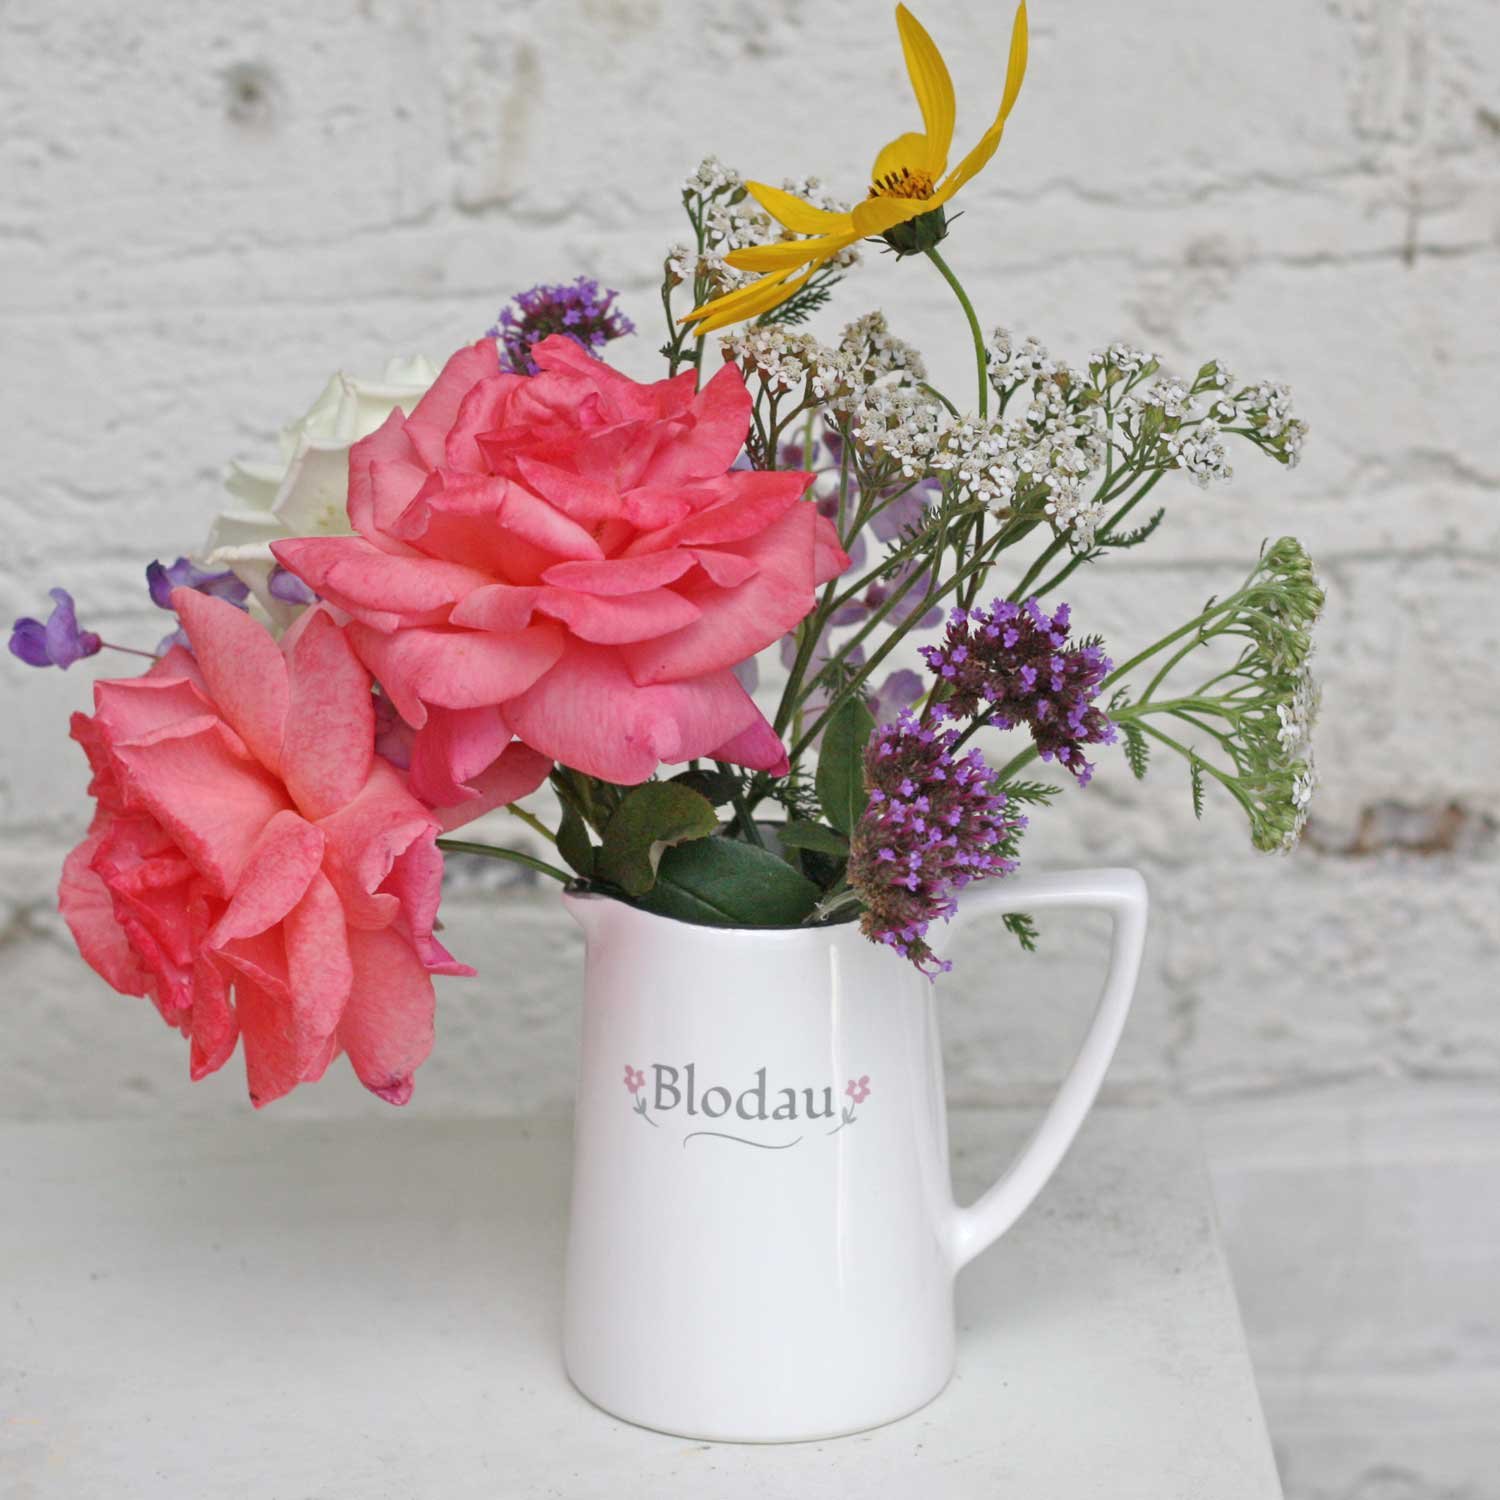 Jug / Vase - Flowers - Blodau - Small-The Welsh Gift Shop